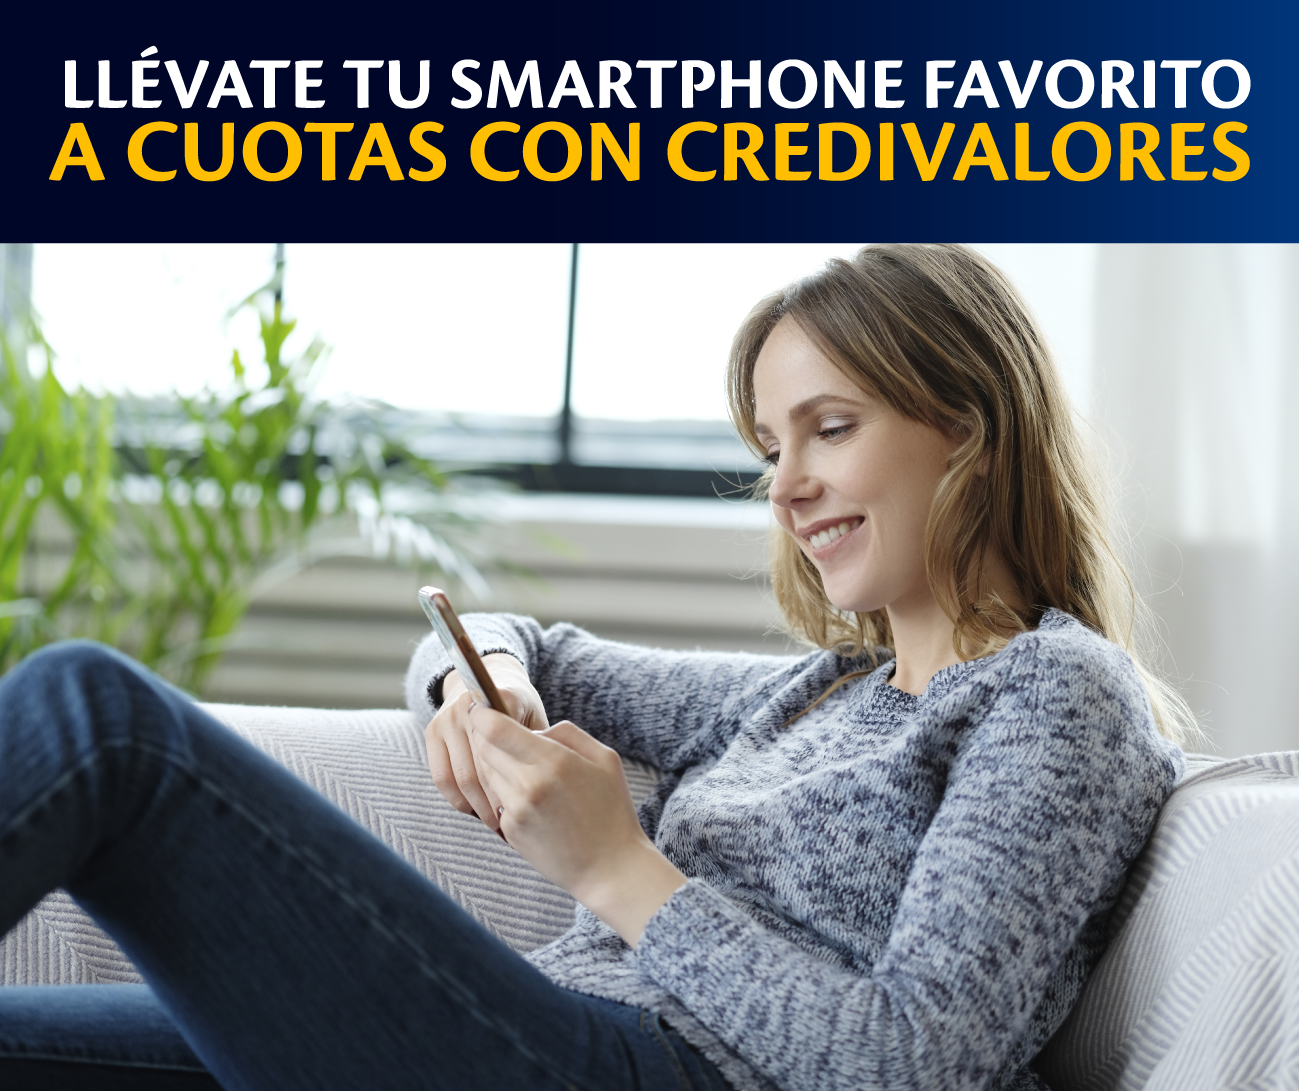 smartphone-credivalores-movil.png